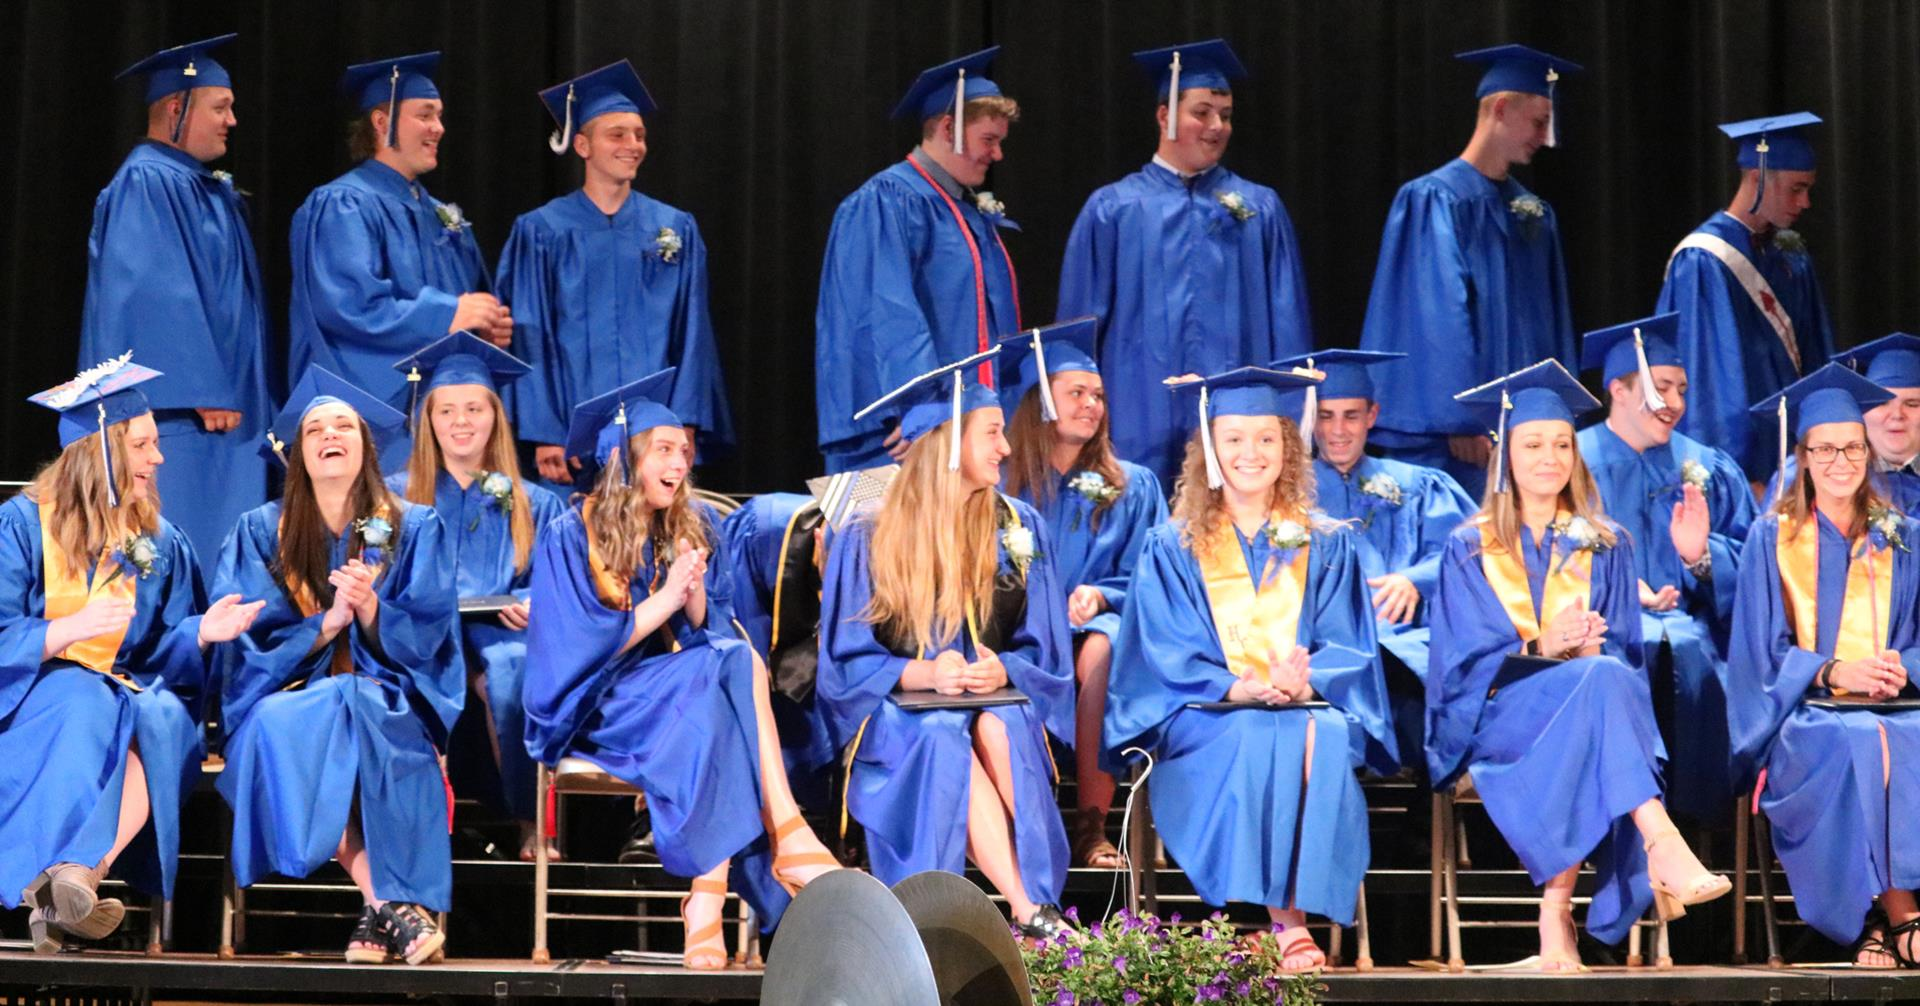 Hancock students at 2019 Graduation Ceremony